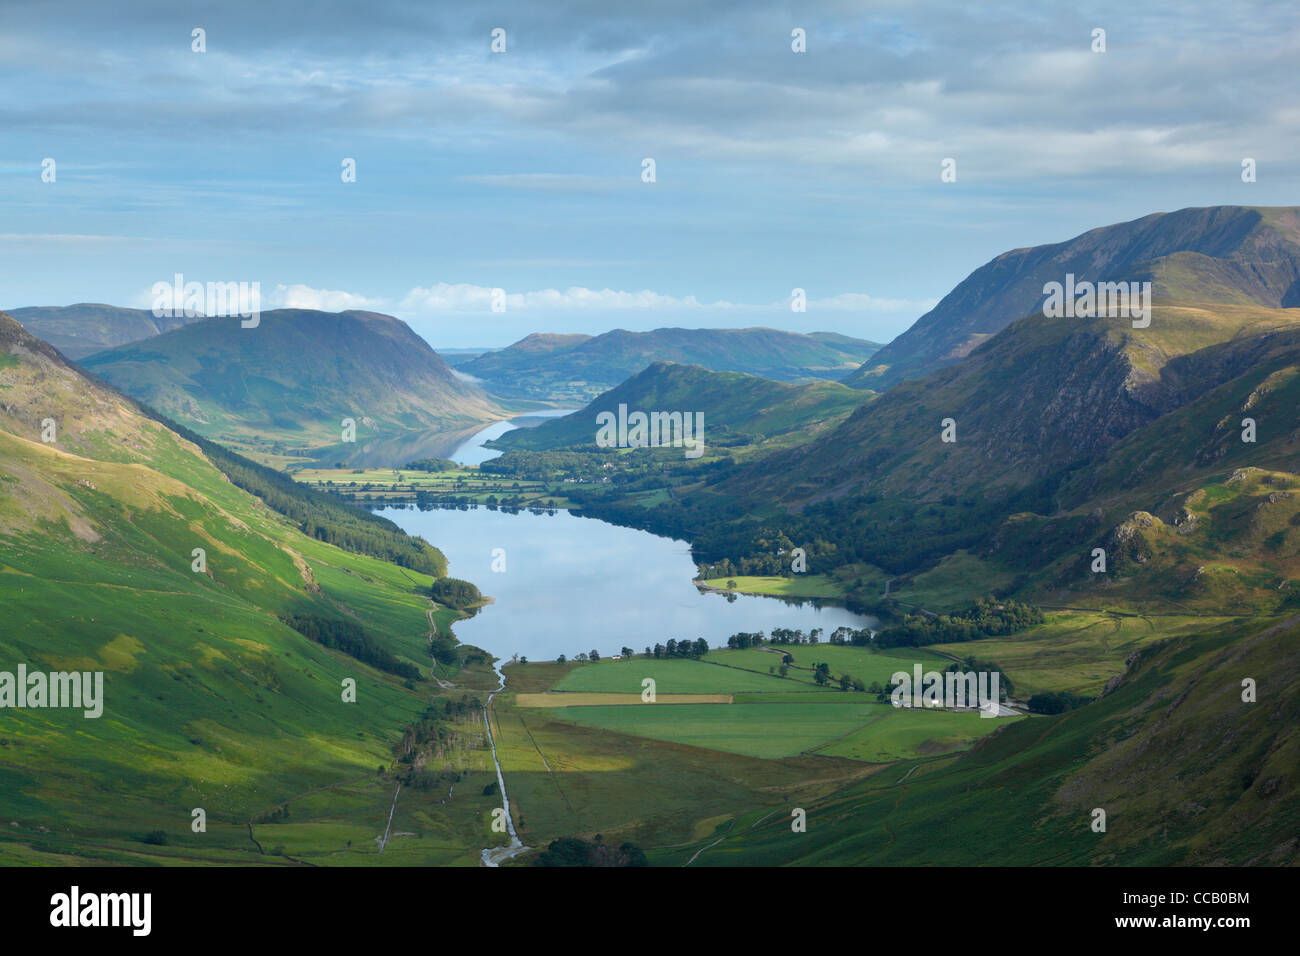 Buttermere and Crummock Water. Lake District National Park. Cumbria. England. UK. Stock Photo